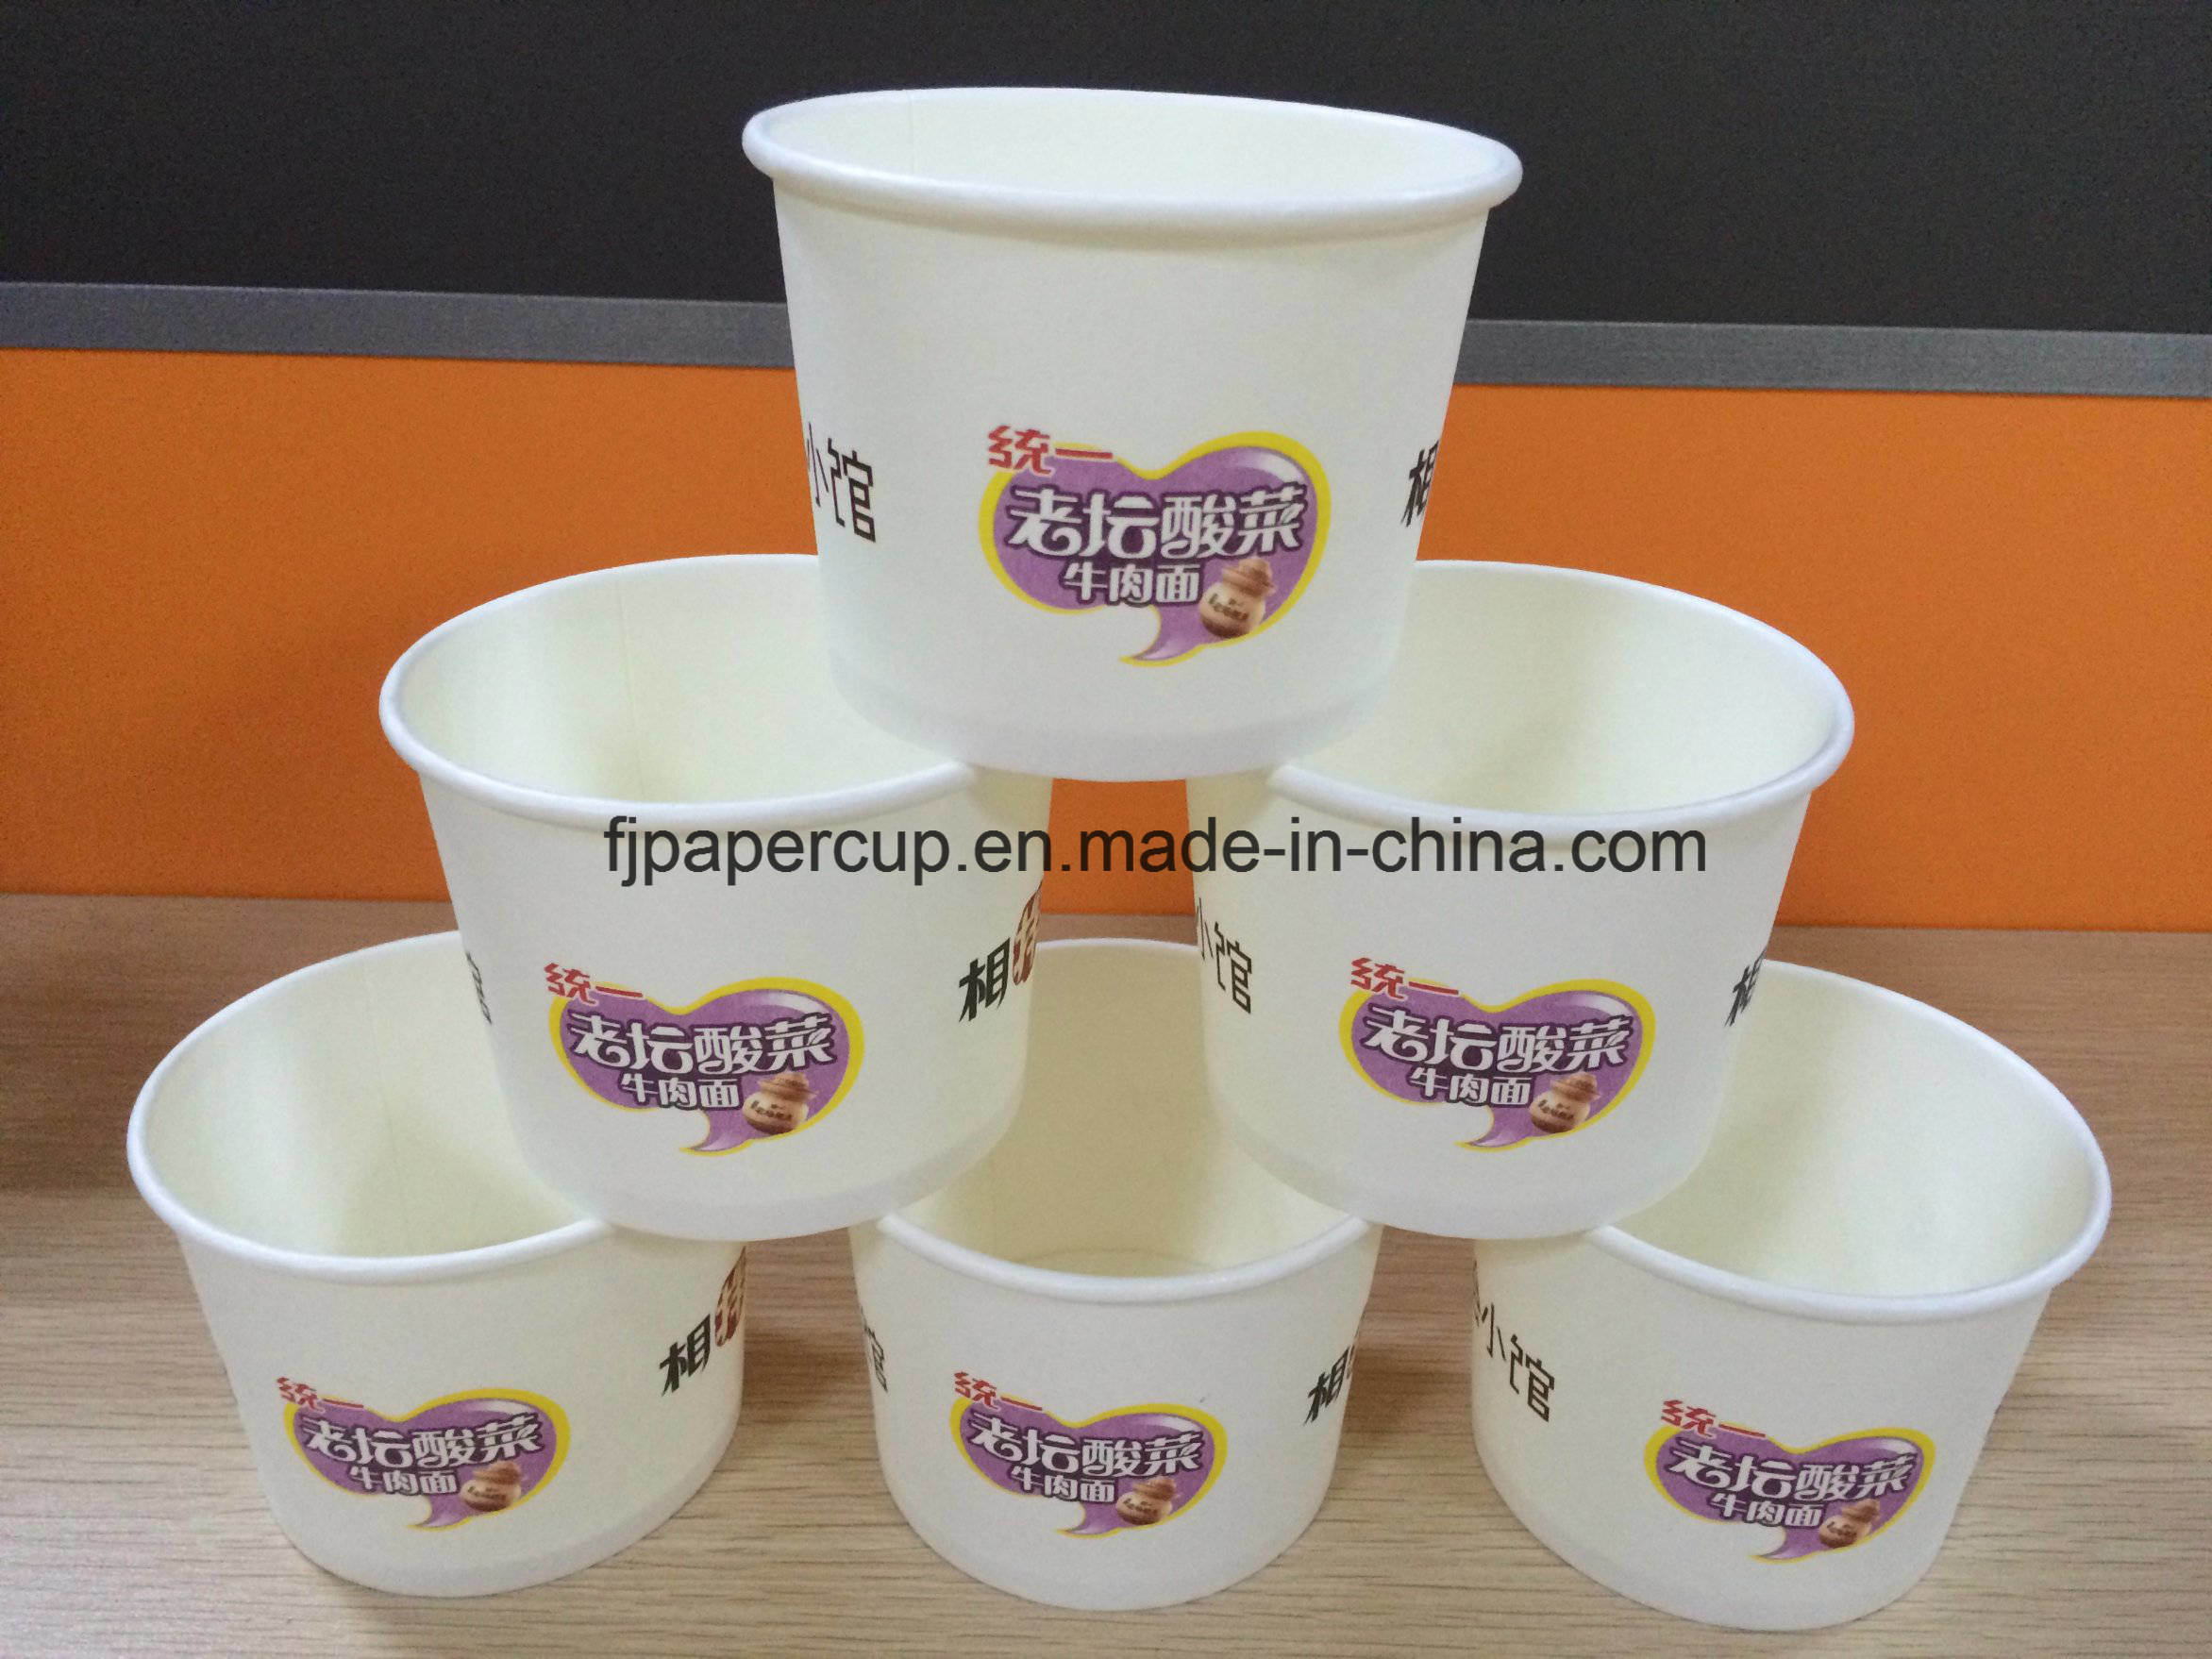 Paper Cup, Paper Box, Paper Coffee Cup, Paper Coat with PE, Wrapping Paper